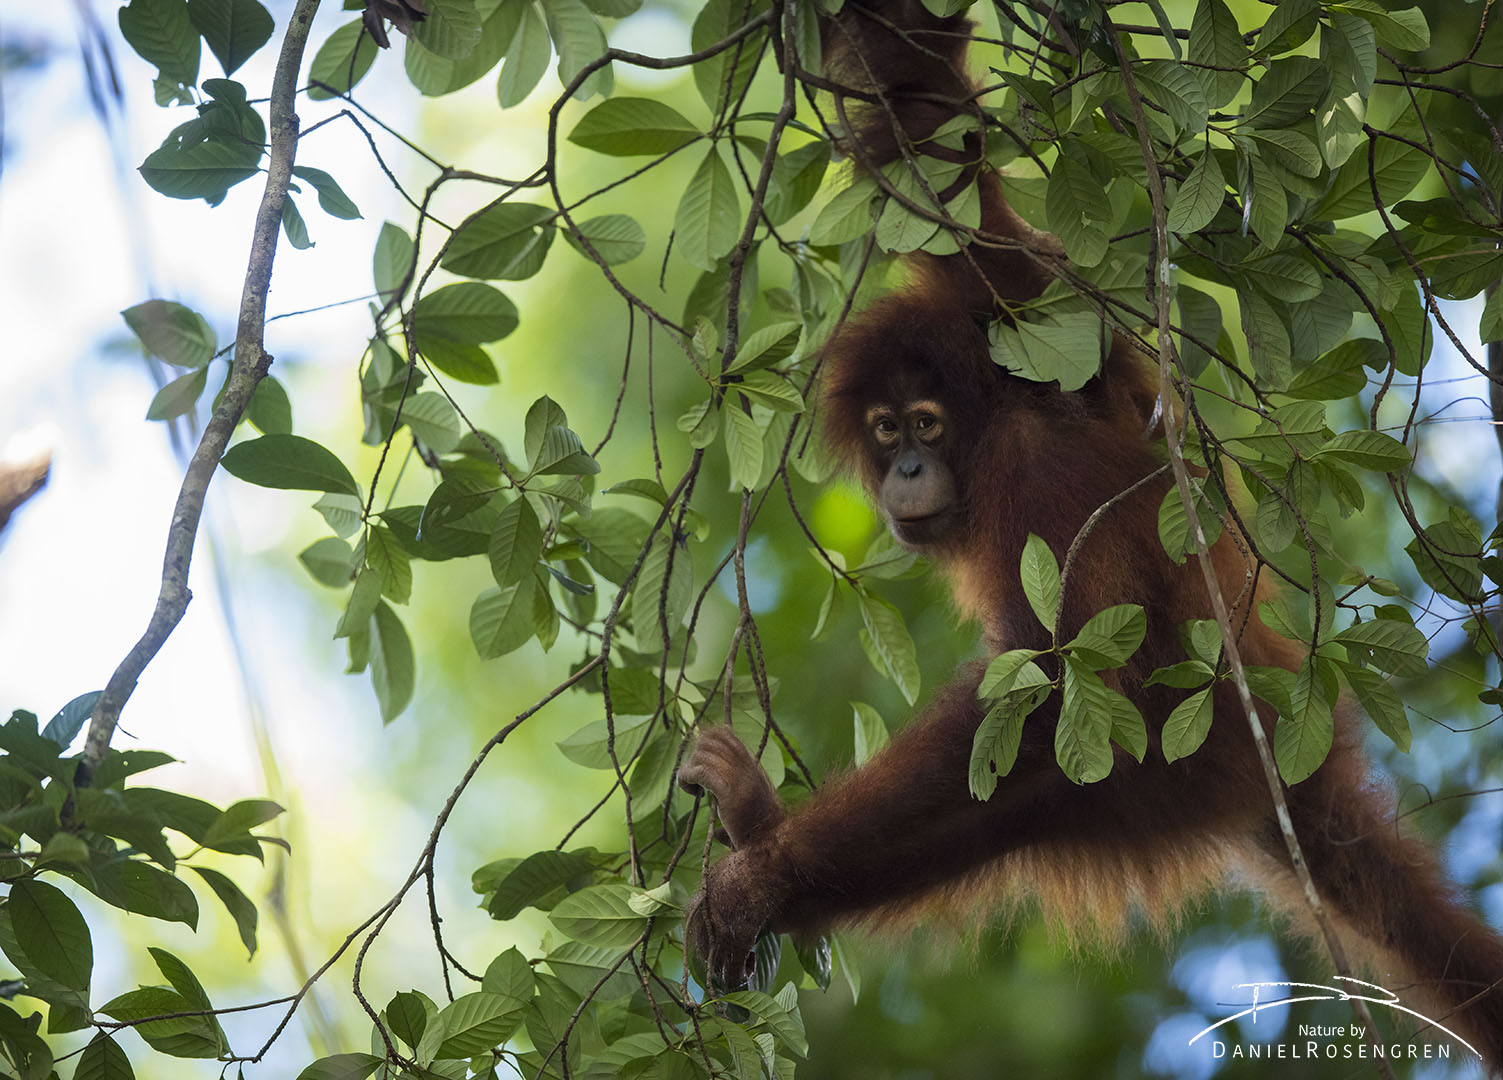 A young Orang-utan climbing on thin branches. © Daniel Rosengren